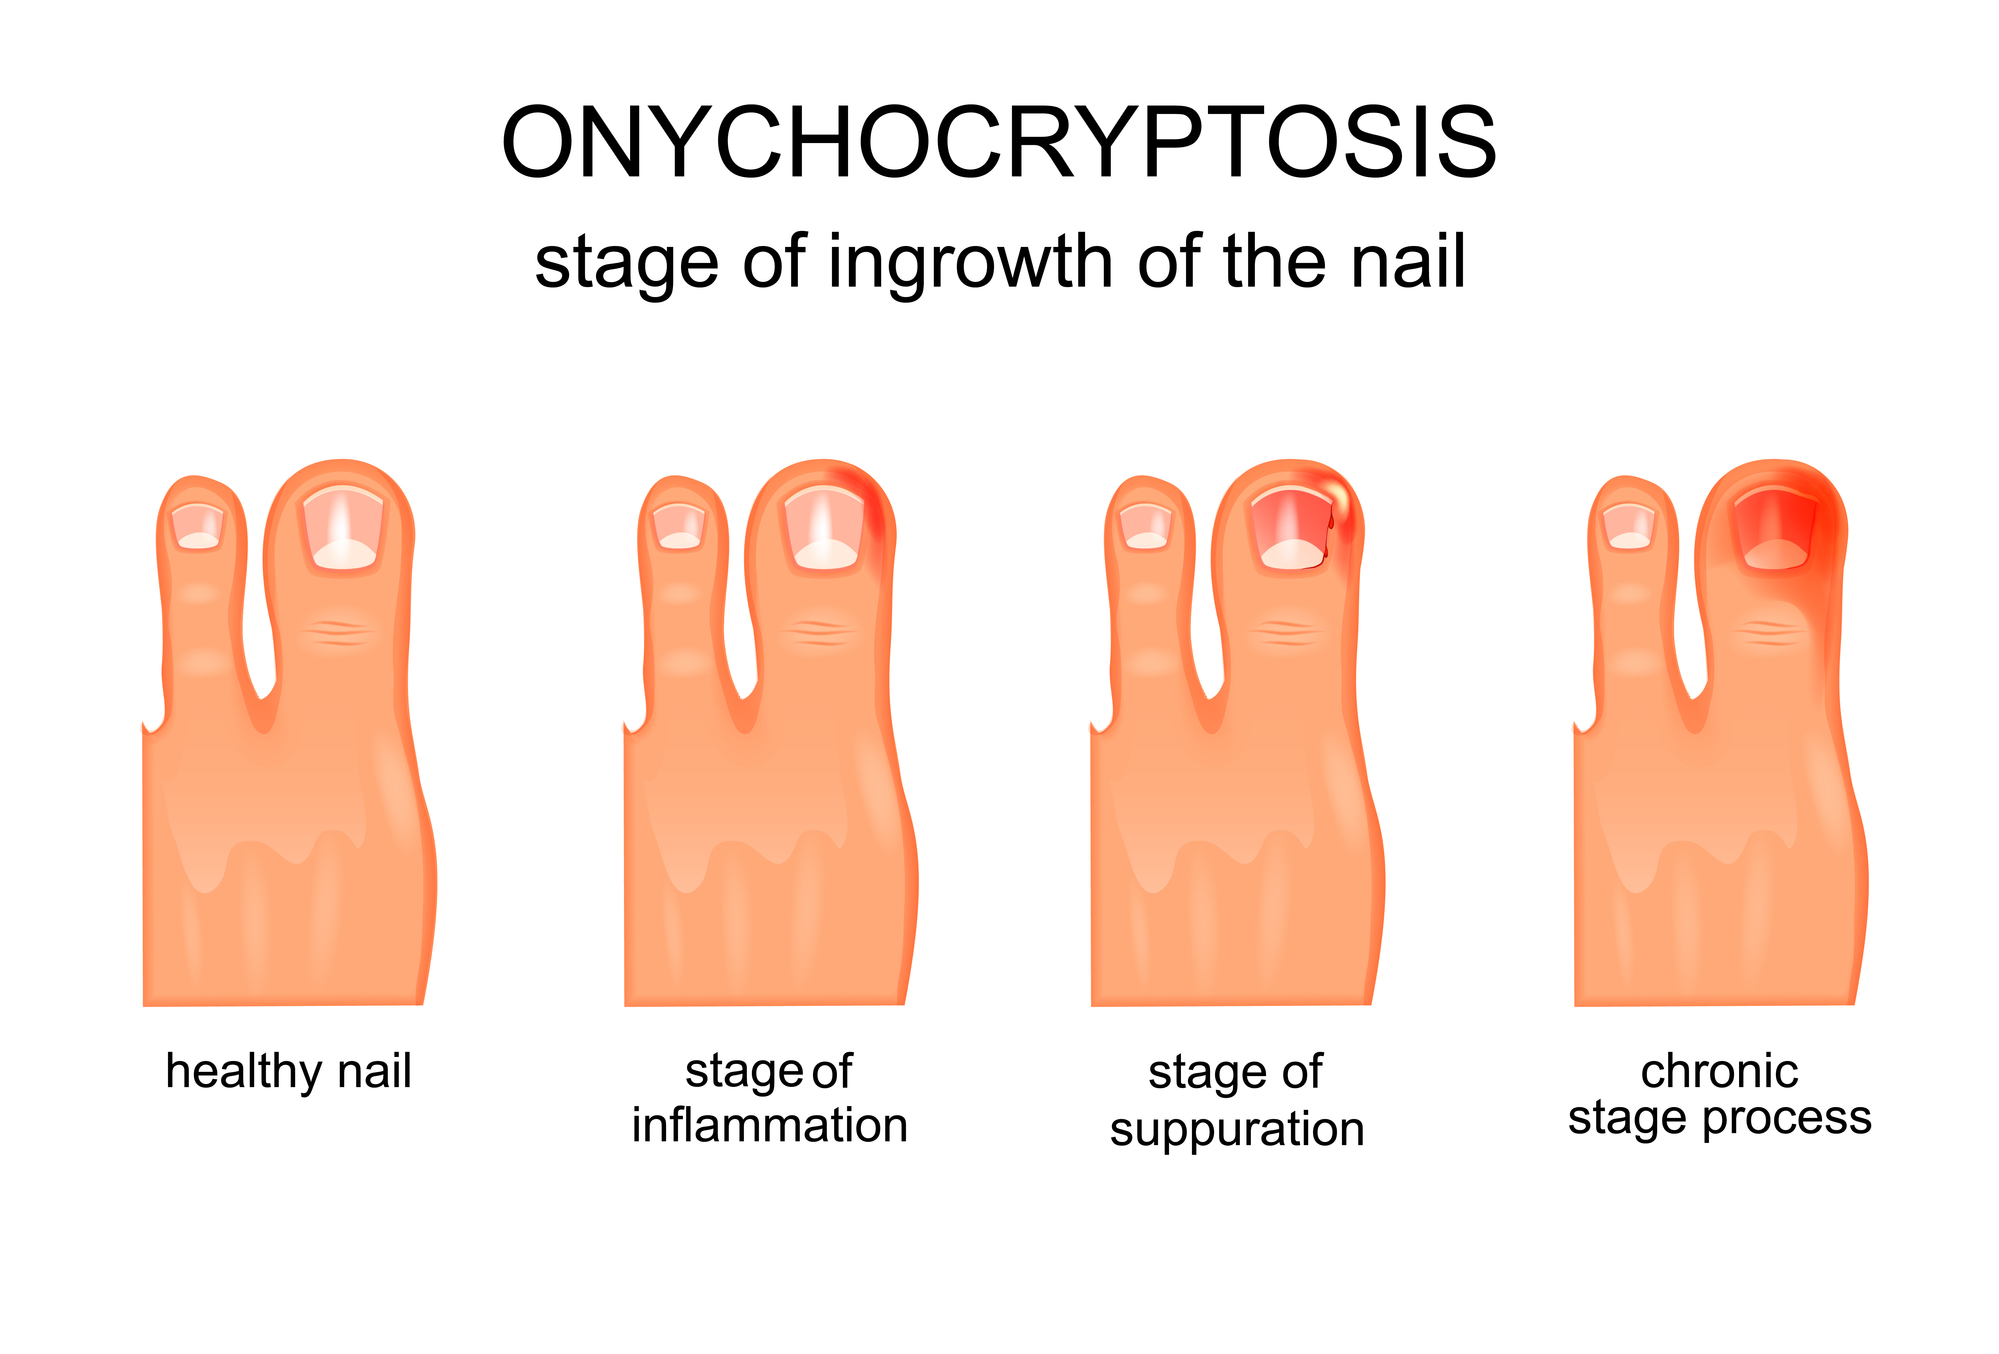 stage of ingrowth of the nail